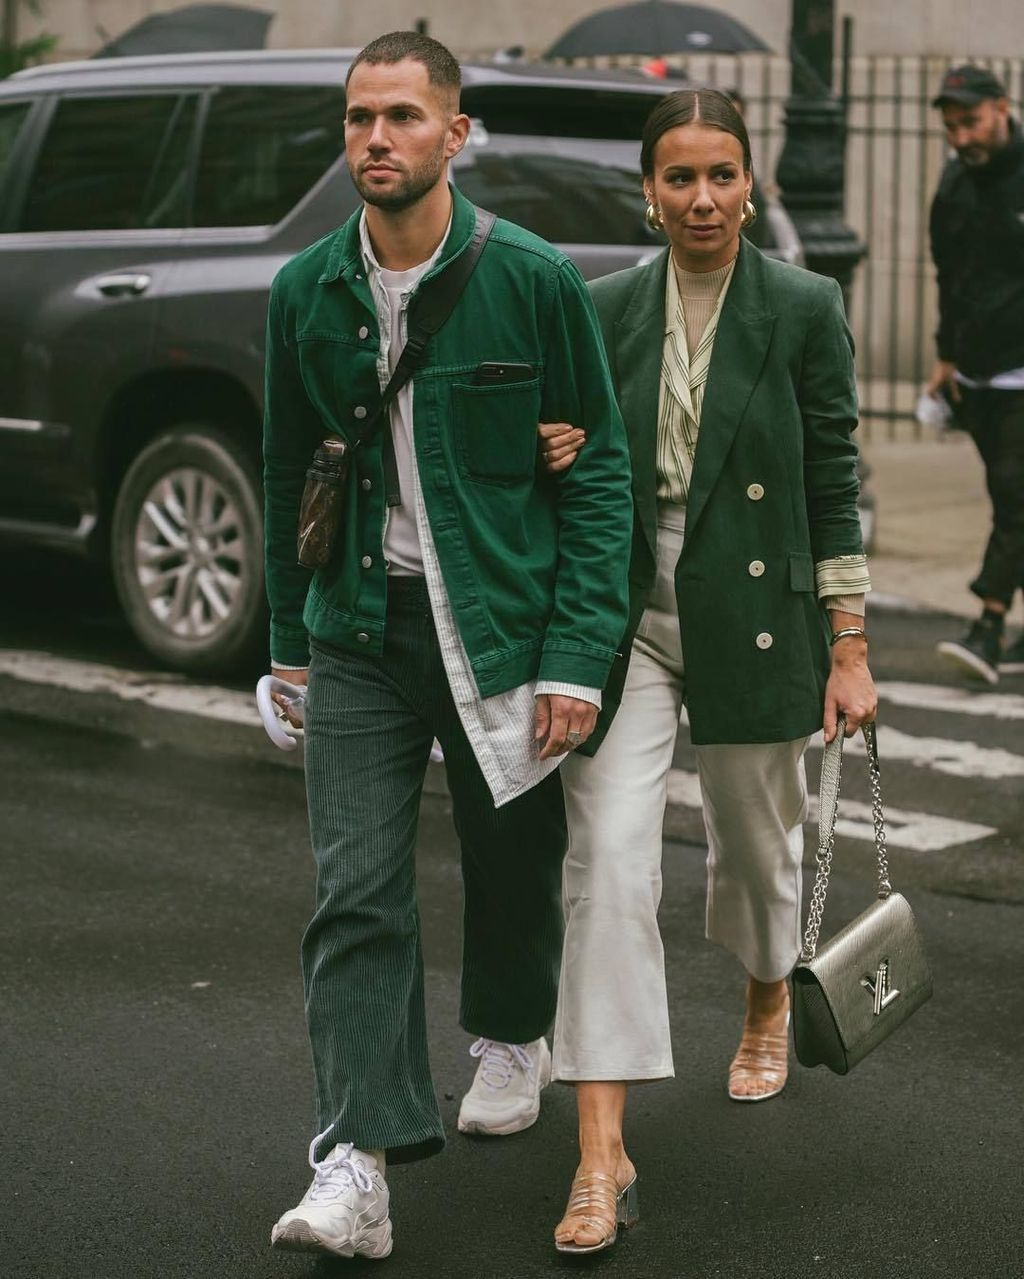 35 Catchy Outfit Street Style Ideas For Men 2019